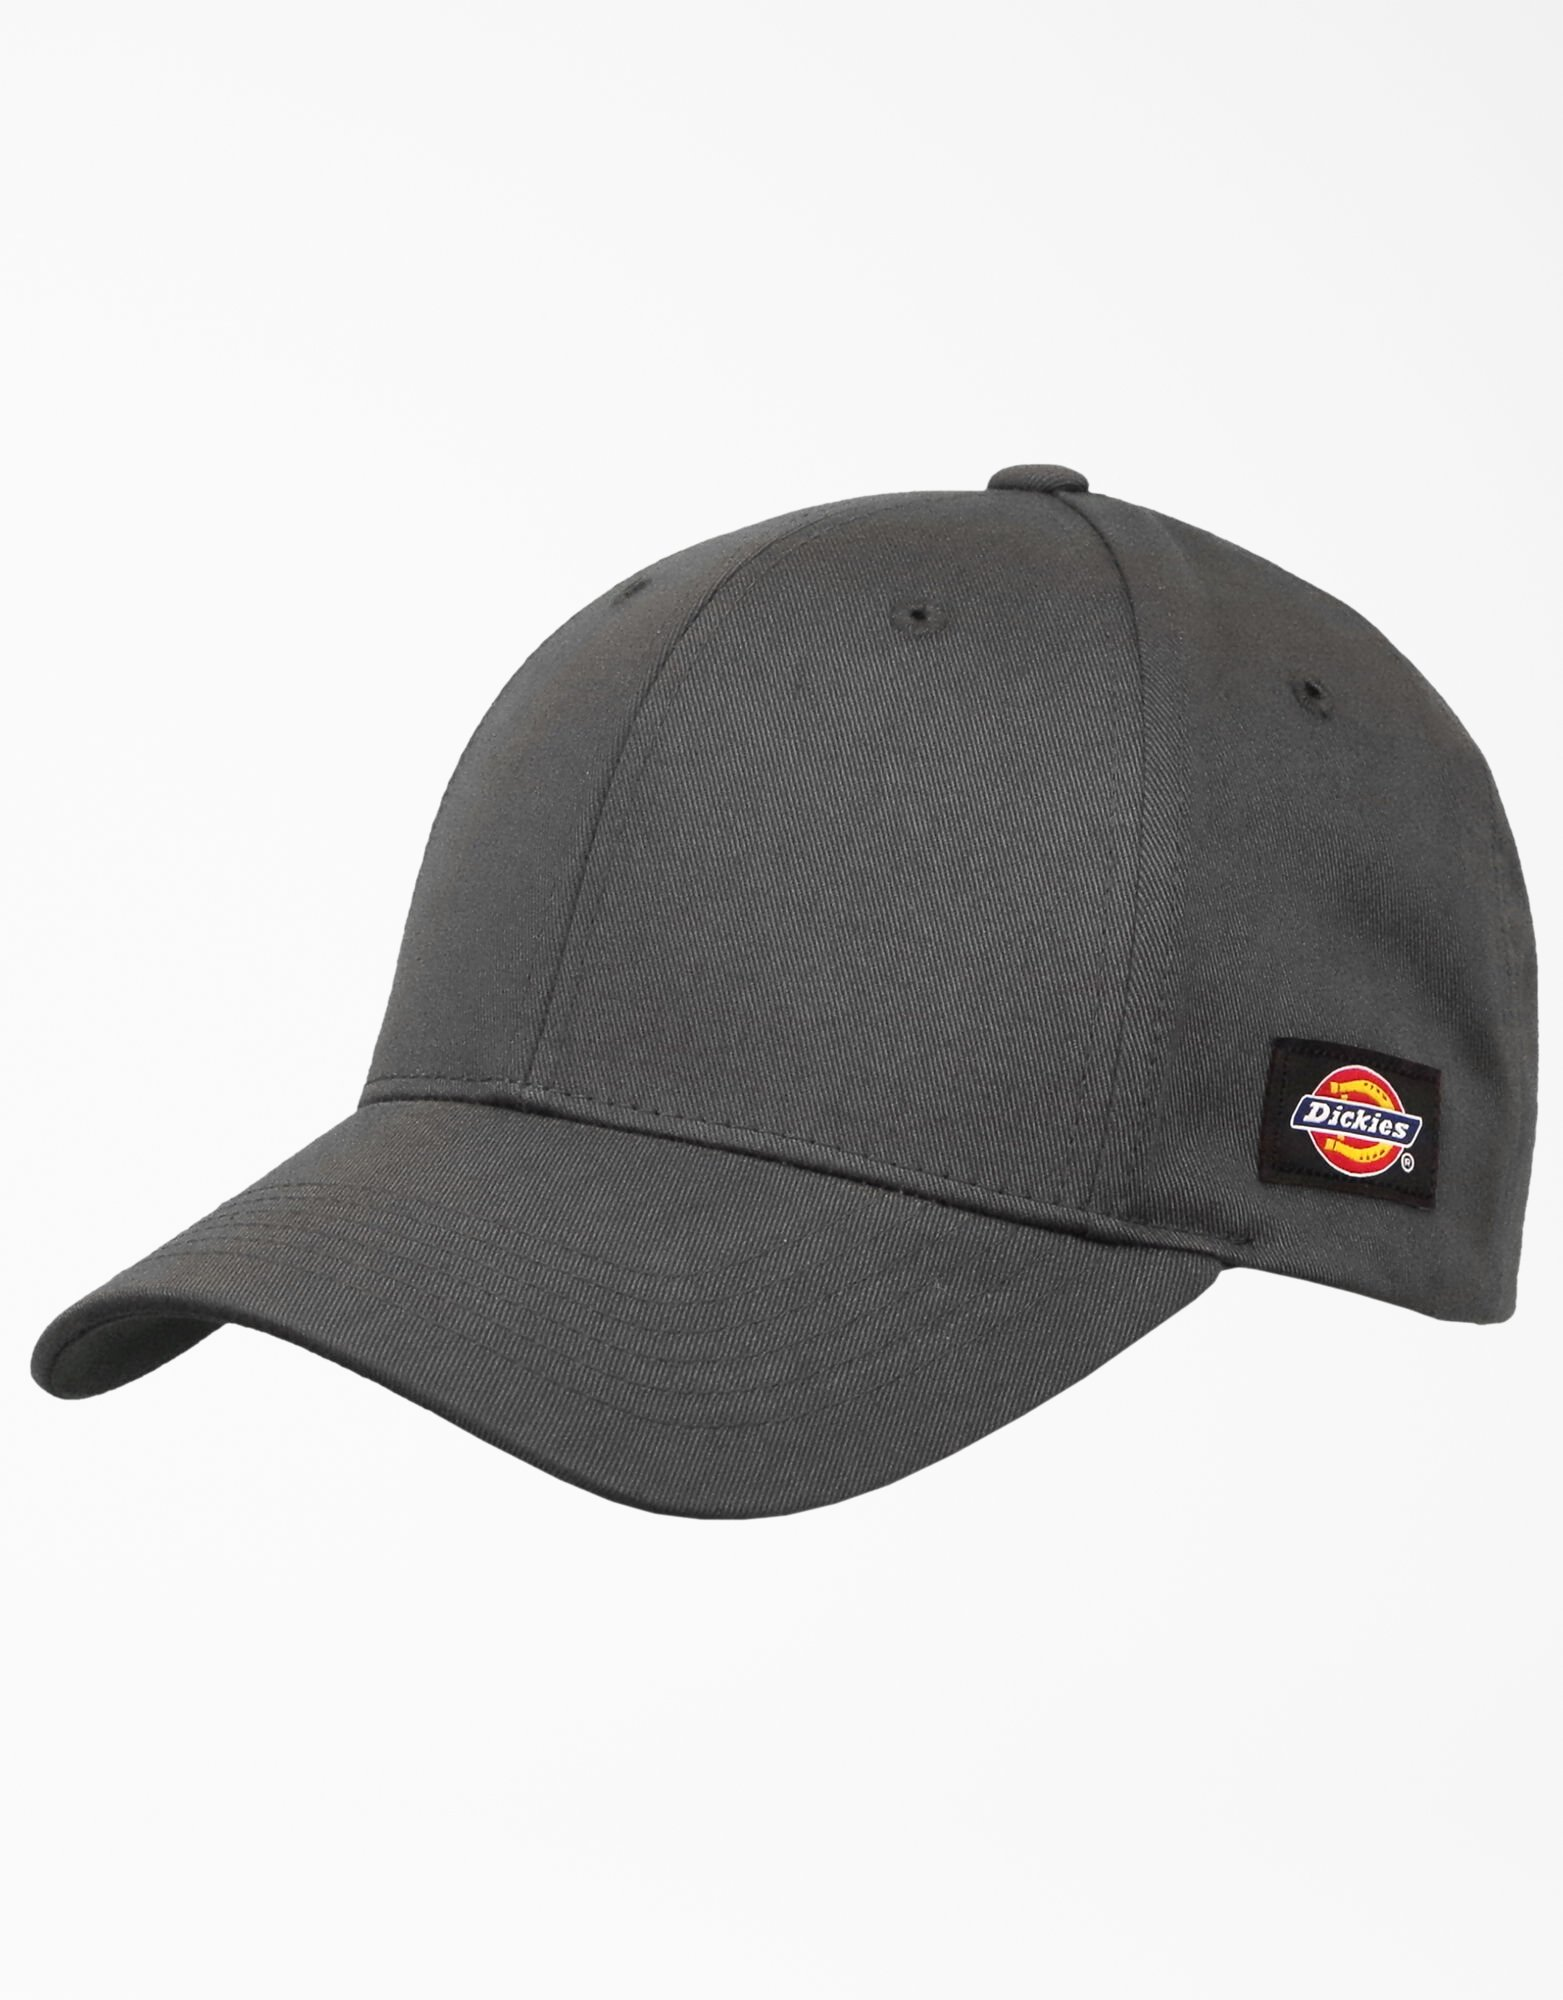 Velcro Adjustable Hat - Charcoal Gray (CH)